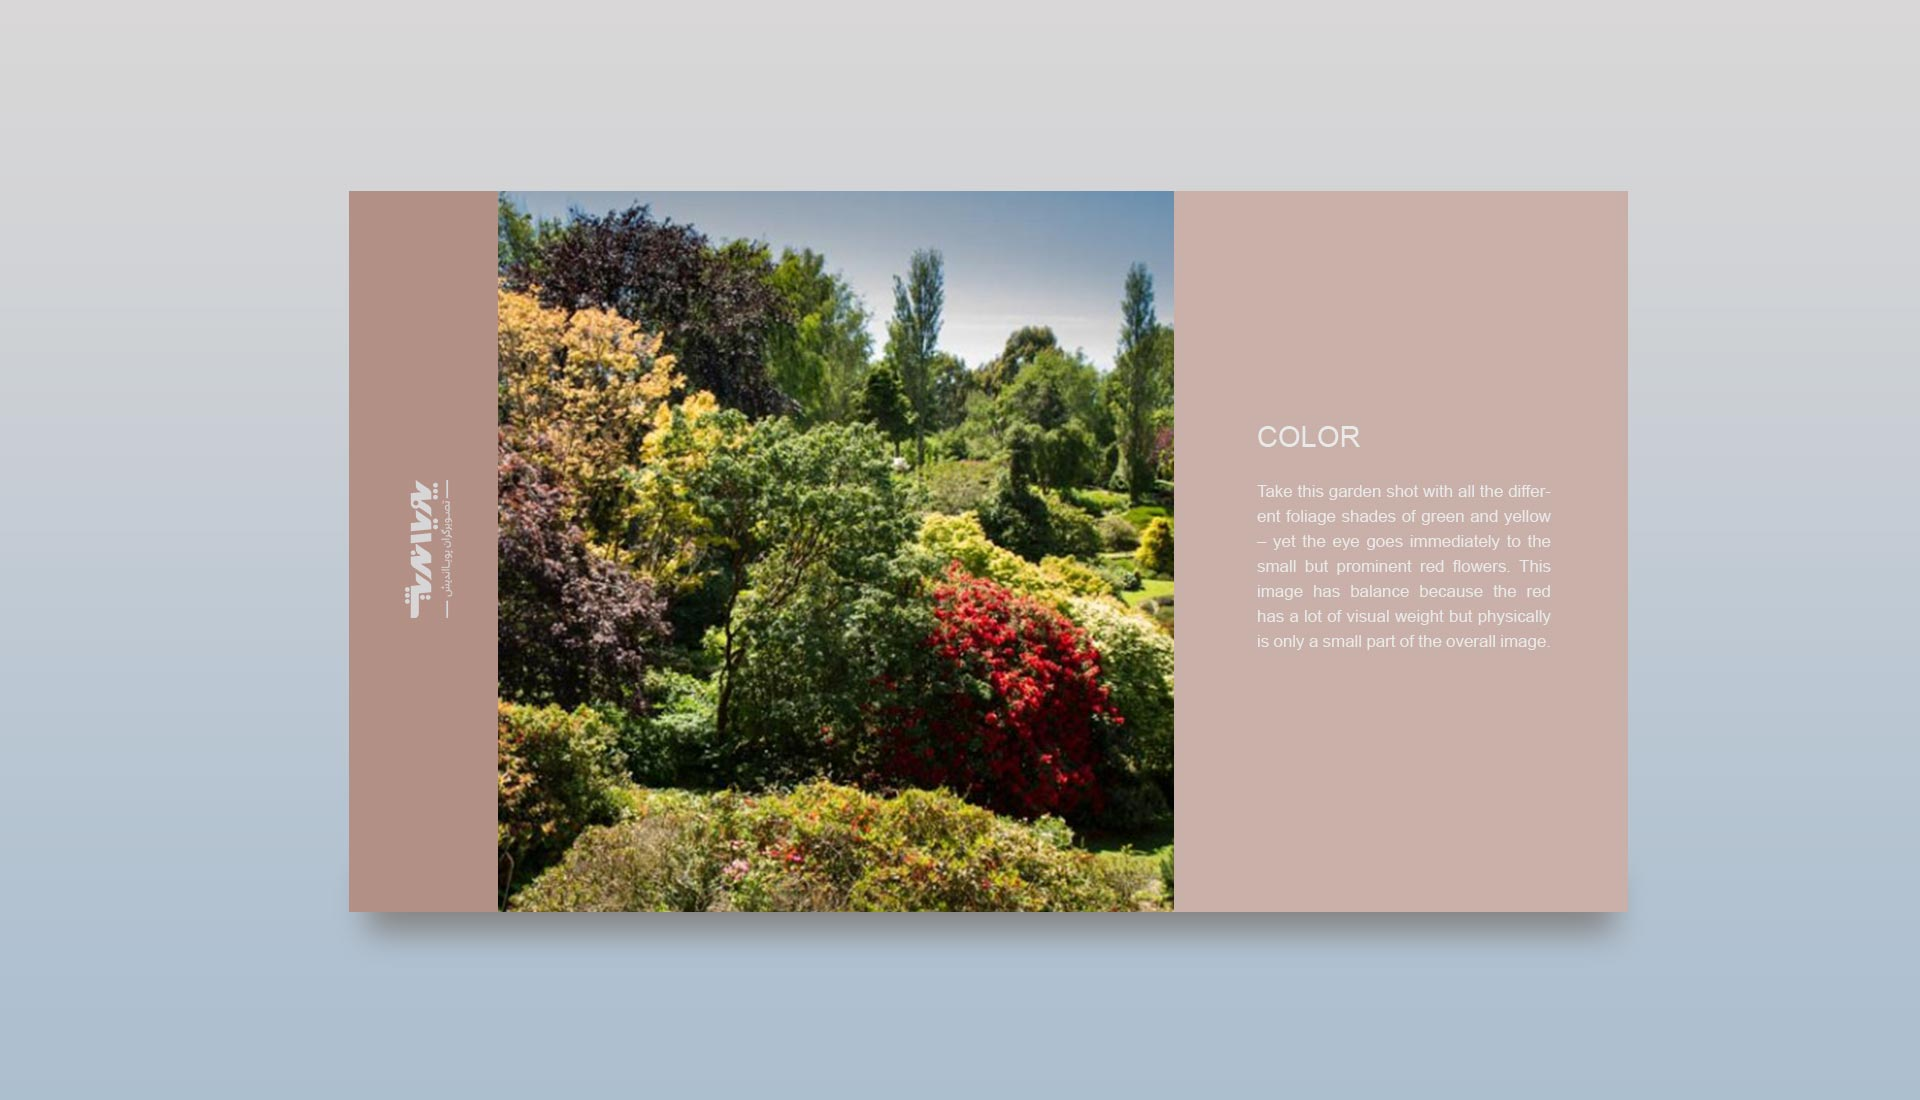 color in photography 2 - تعادل در عکاسی